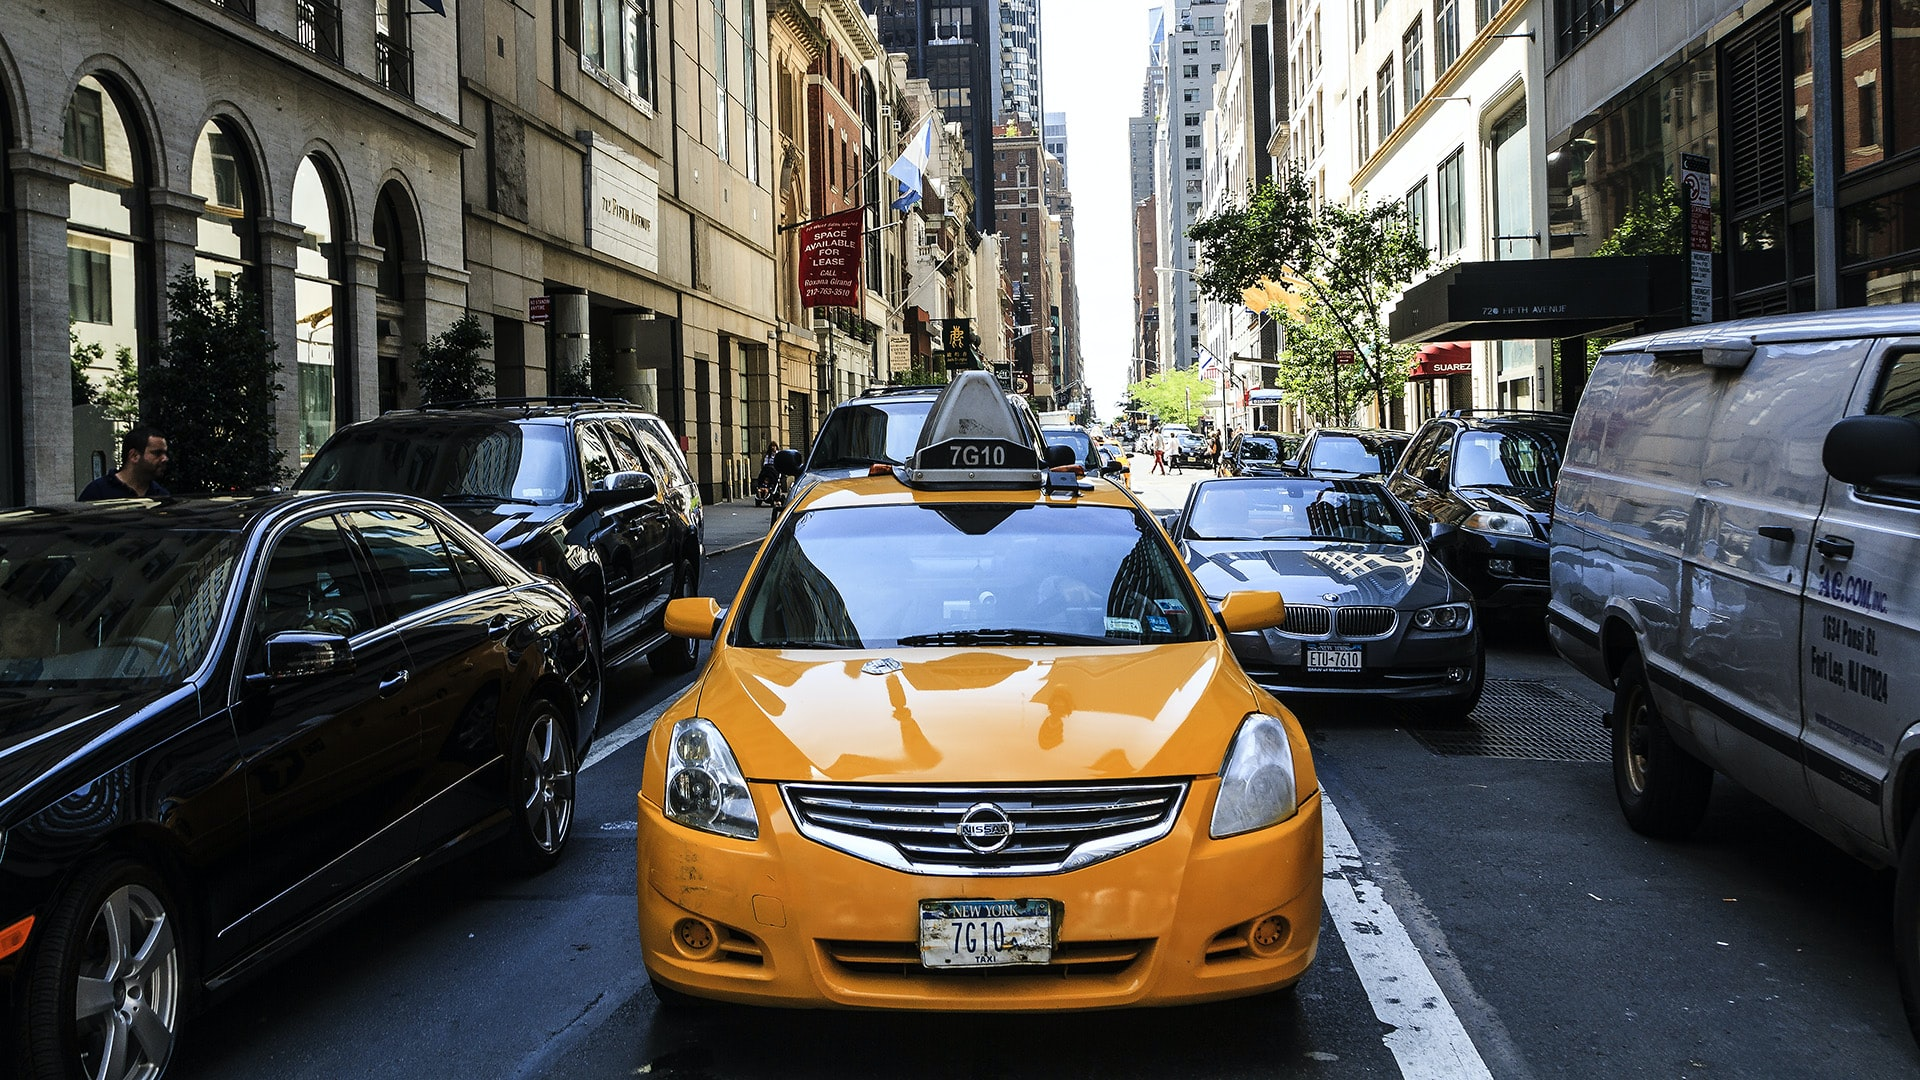 A yellow taxi driving down a busy New York City street